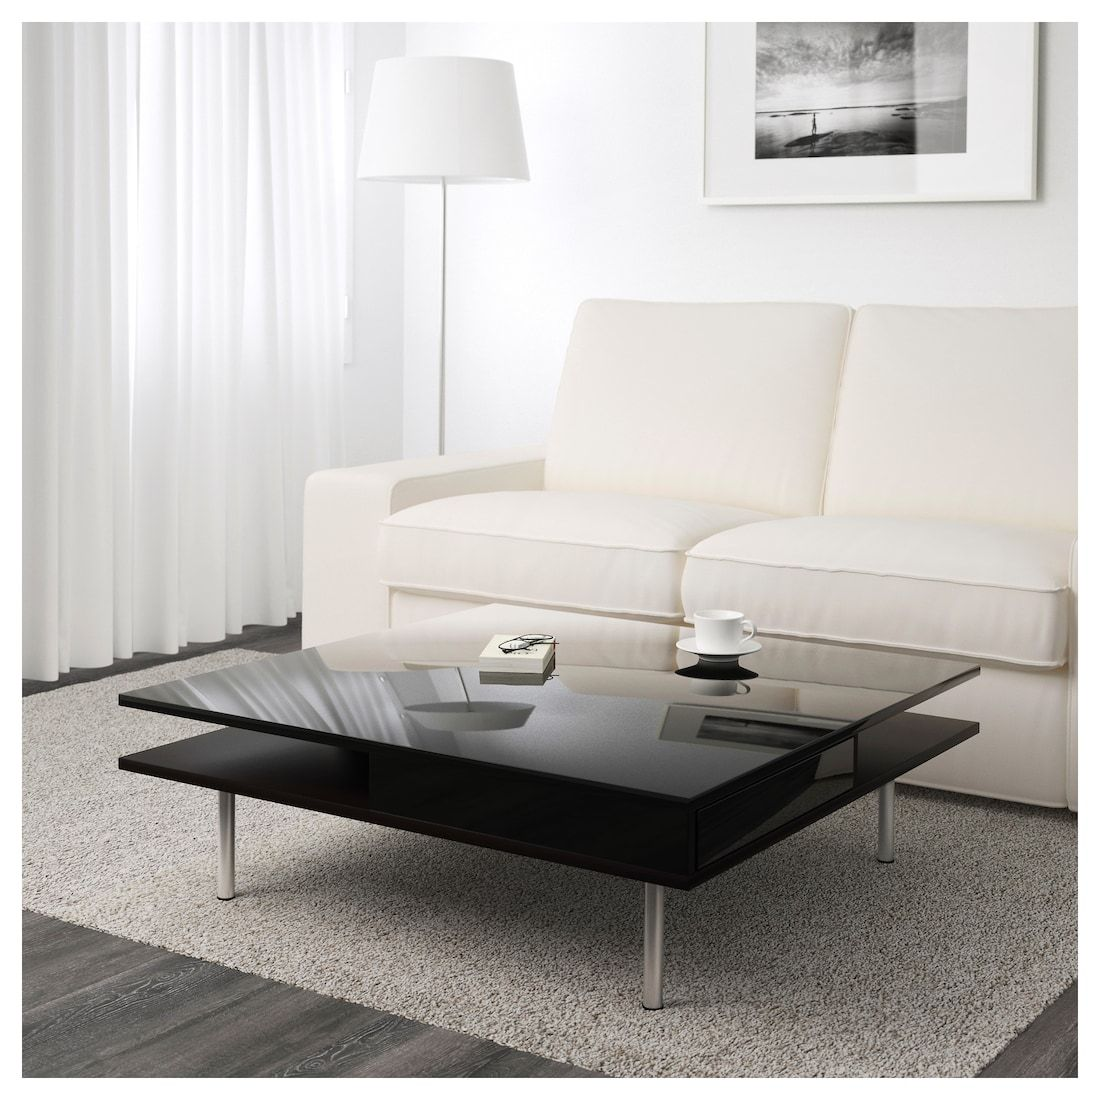 Tofteryd Coffee Table High Gloss Black 37 3 8x37 3 8 Ikea In 2020 White Living Room Tables Ikea Coffee Table Black Coffee Tables [ jpg ]